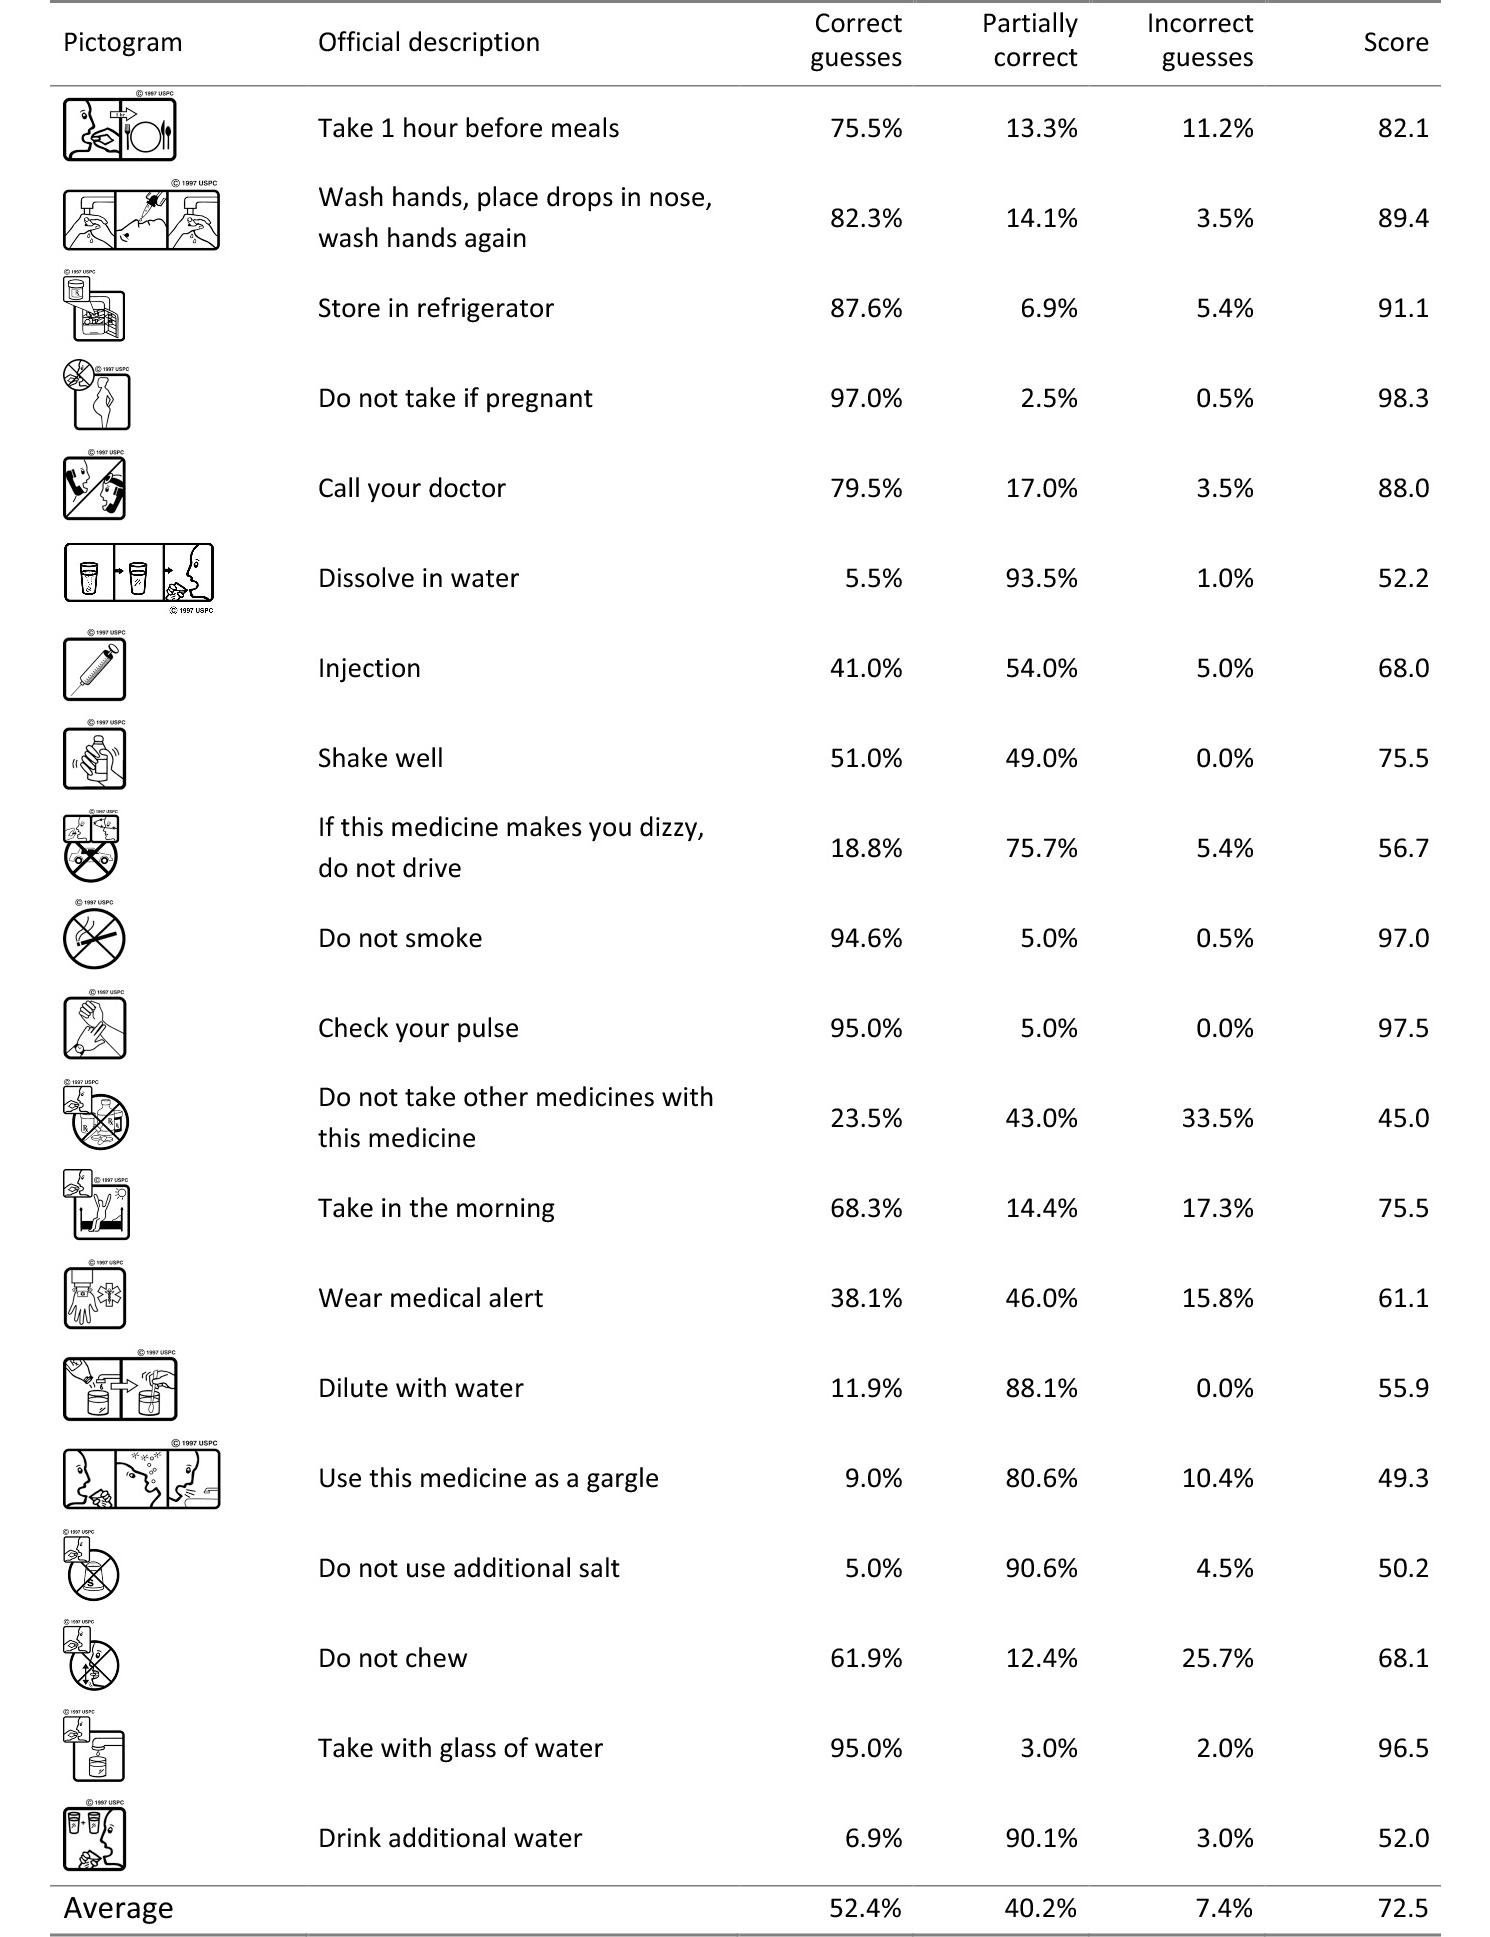 Jmir crowdsourcing participatory evaluation of medical pictograms view this figure figure 2 the 20 pictograms and their comprehensibility scores buycottarizona